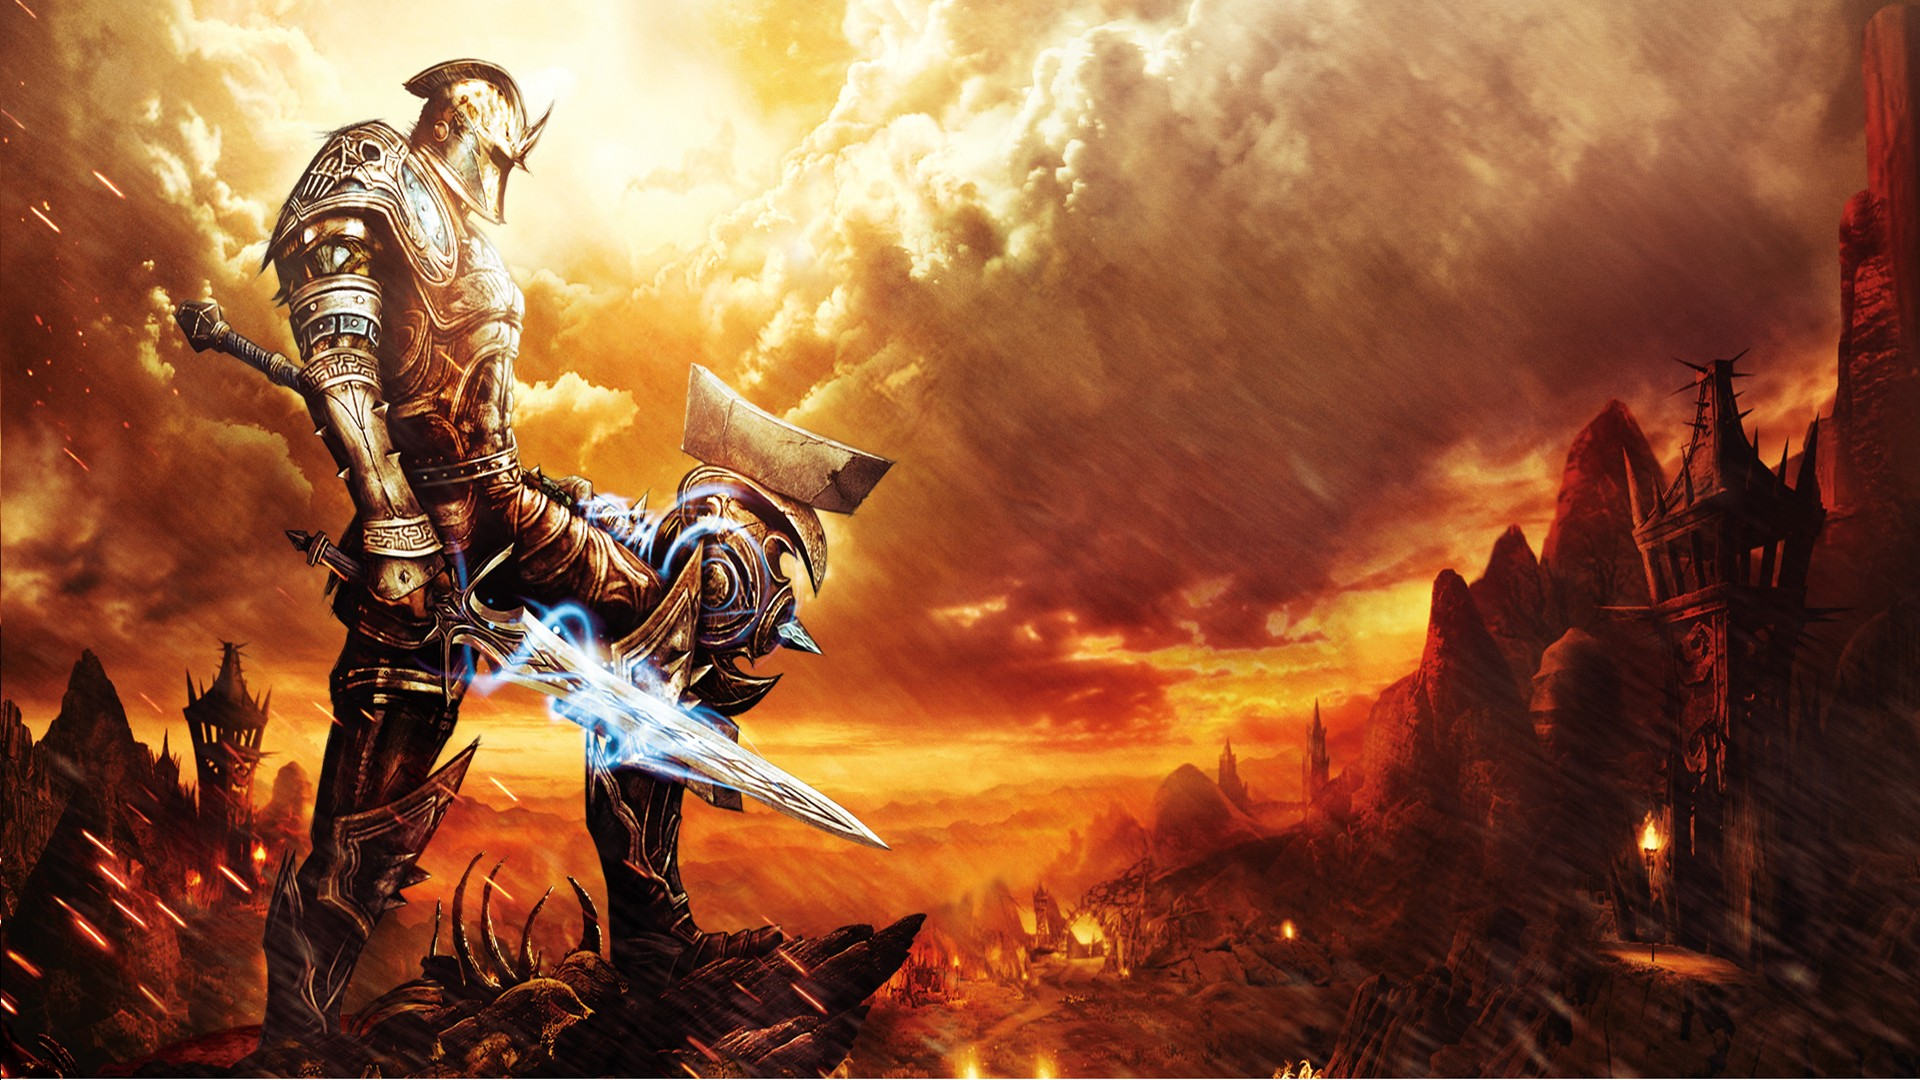 Kingdoms of amalur reckoning all versions plus 13 trainer fixed